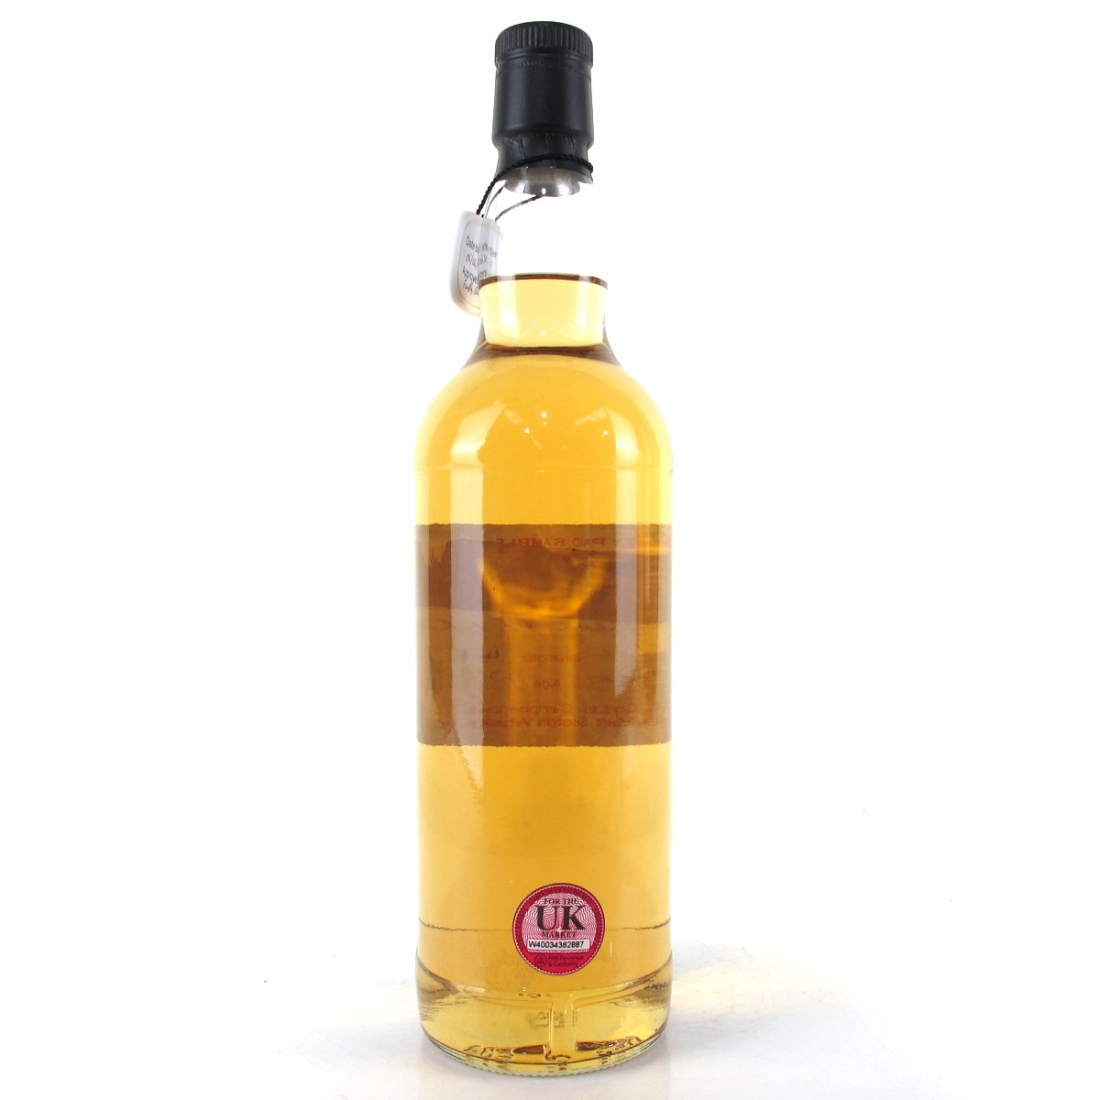 Springbank 2000 Duty Paid Sample 17 Year Old